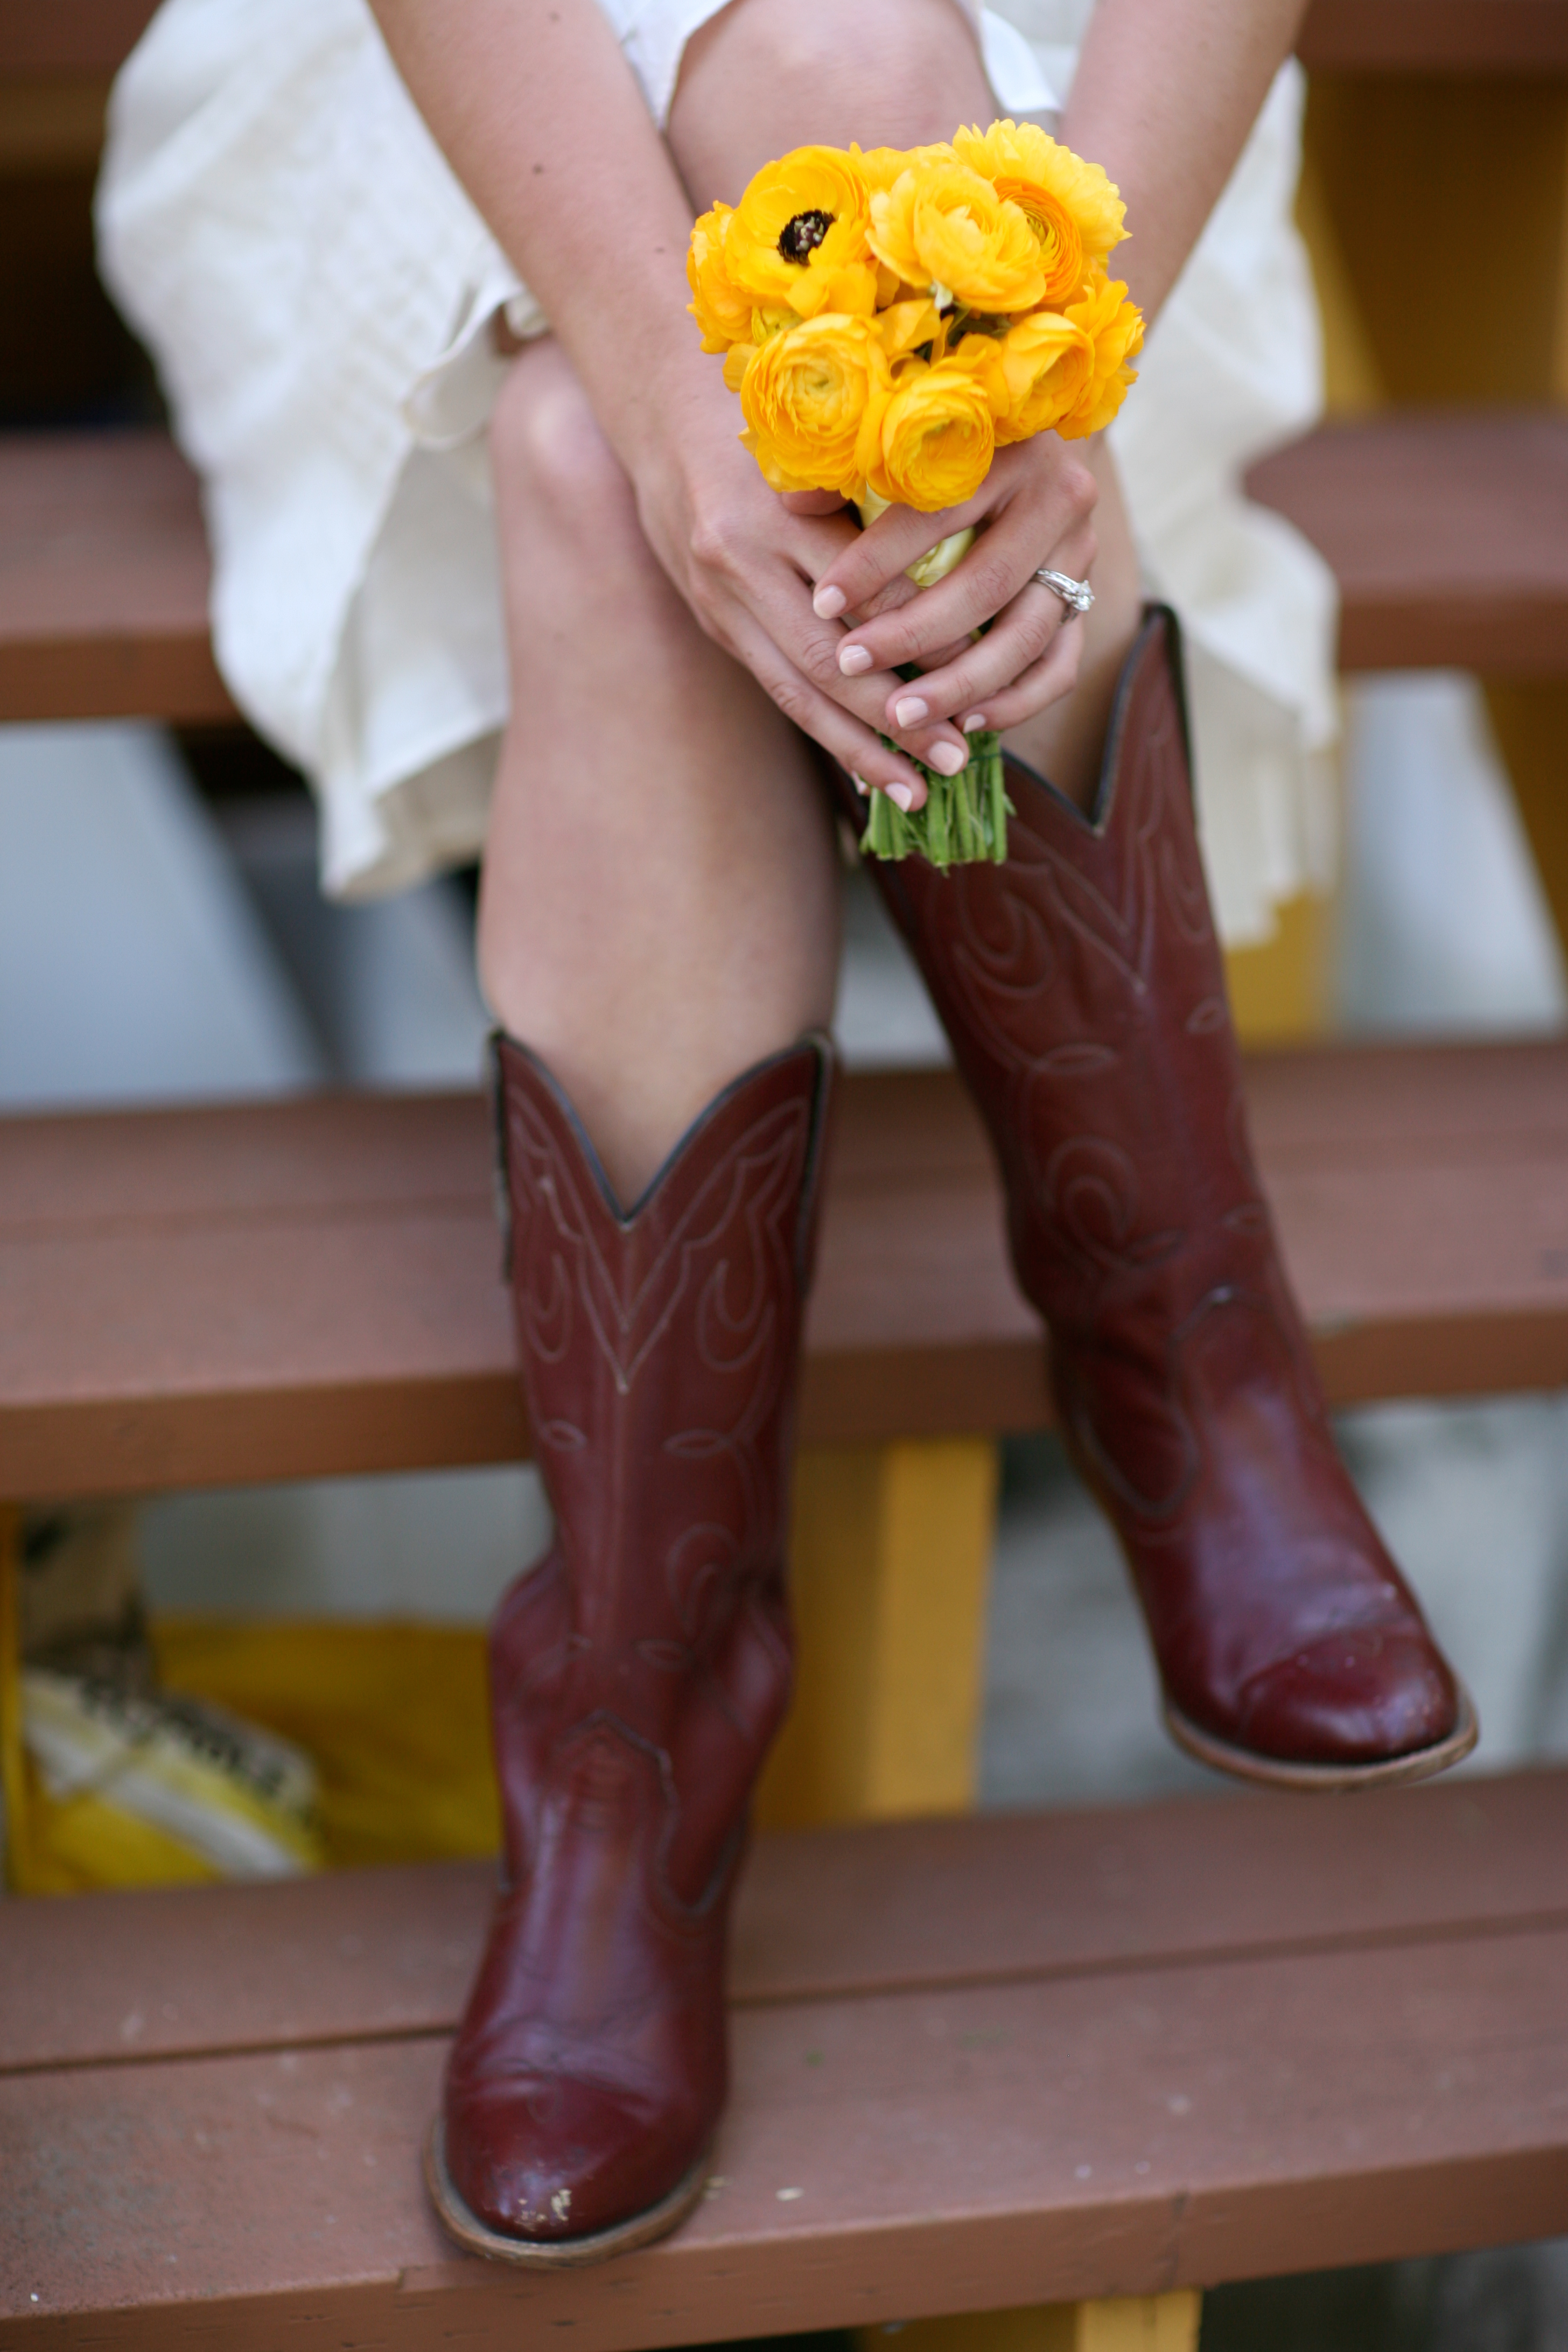 DIY, Flowers & Decor, white, yellow, Bride Bouquets, Garden, Flowers, Garden Wedding Flowers & Decor, Bouquet, Downey street events, Annie mcelwain, Cowboy boots